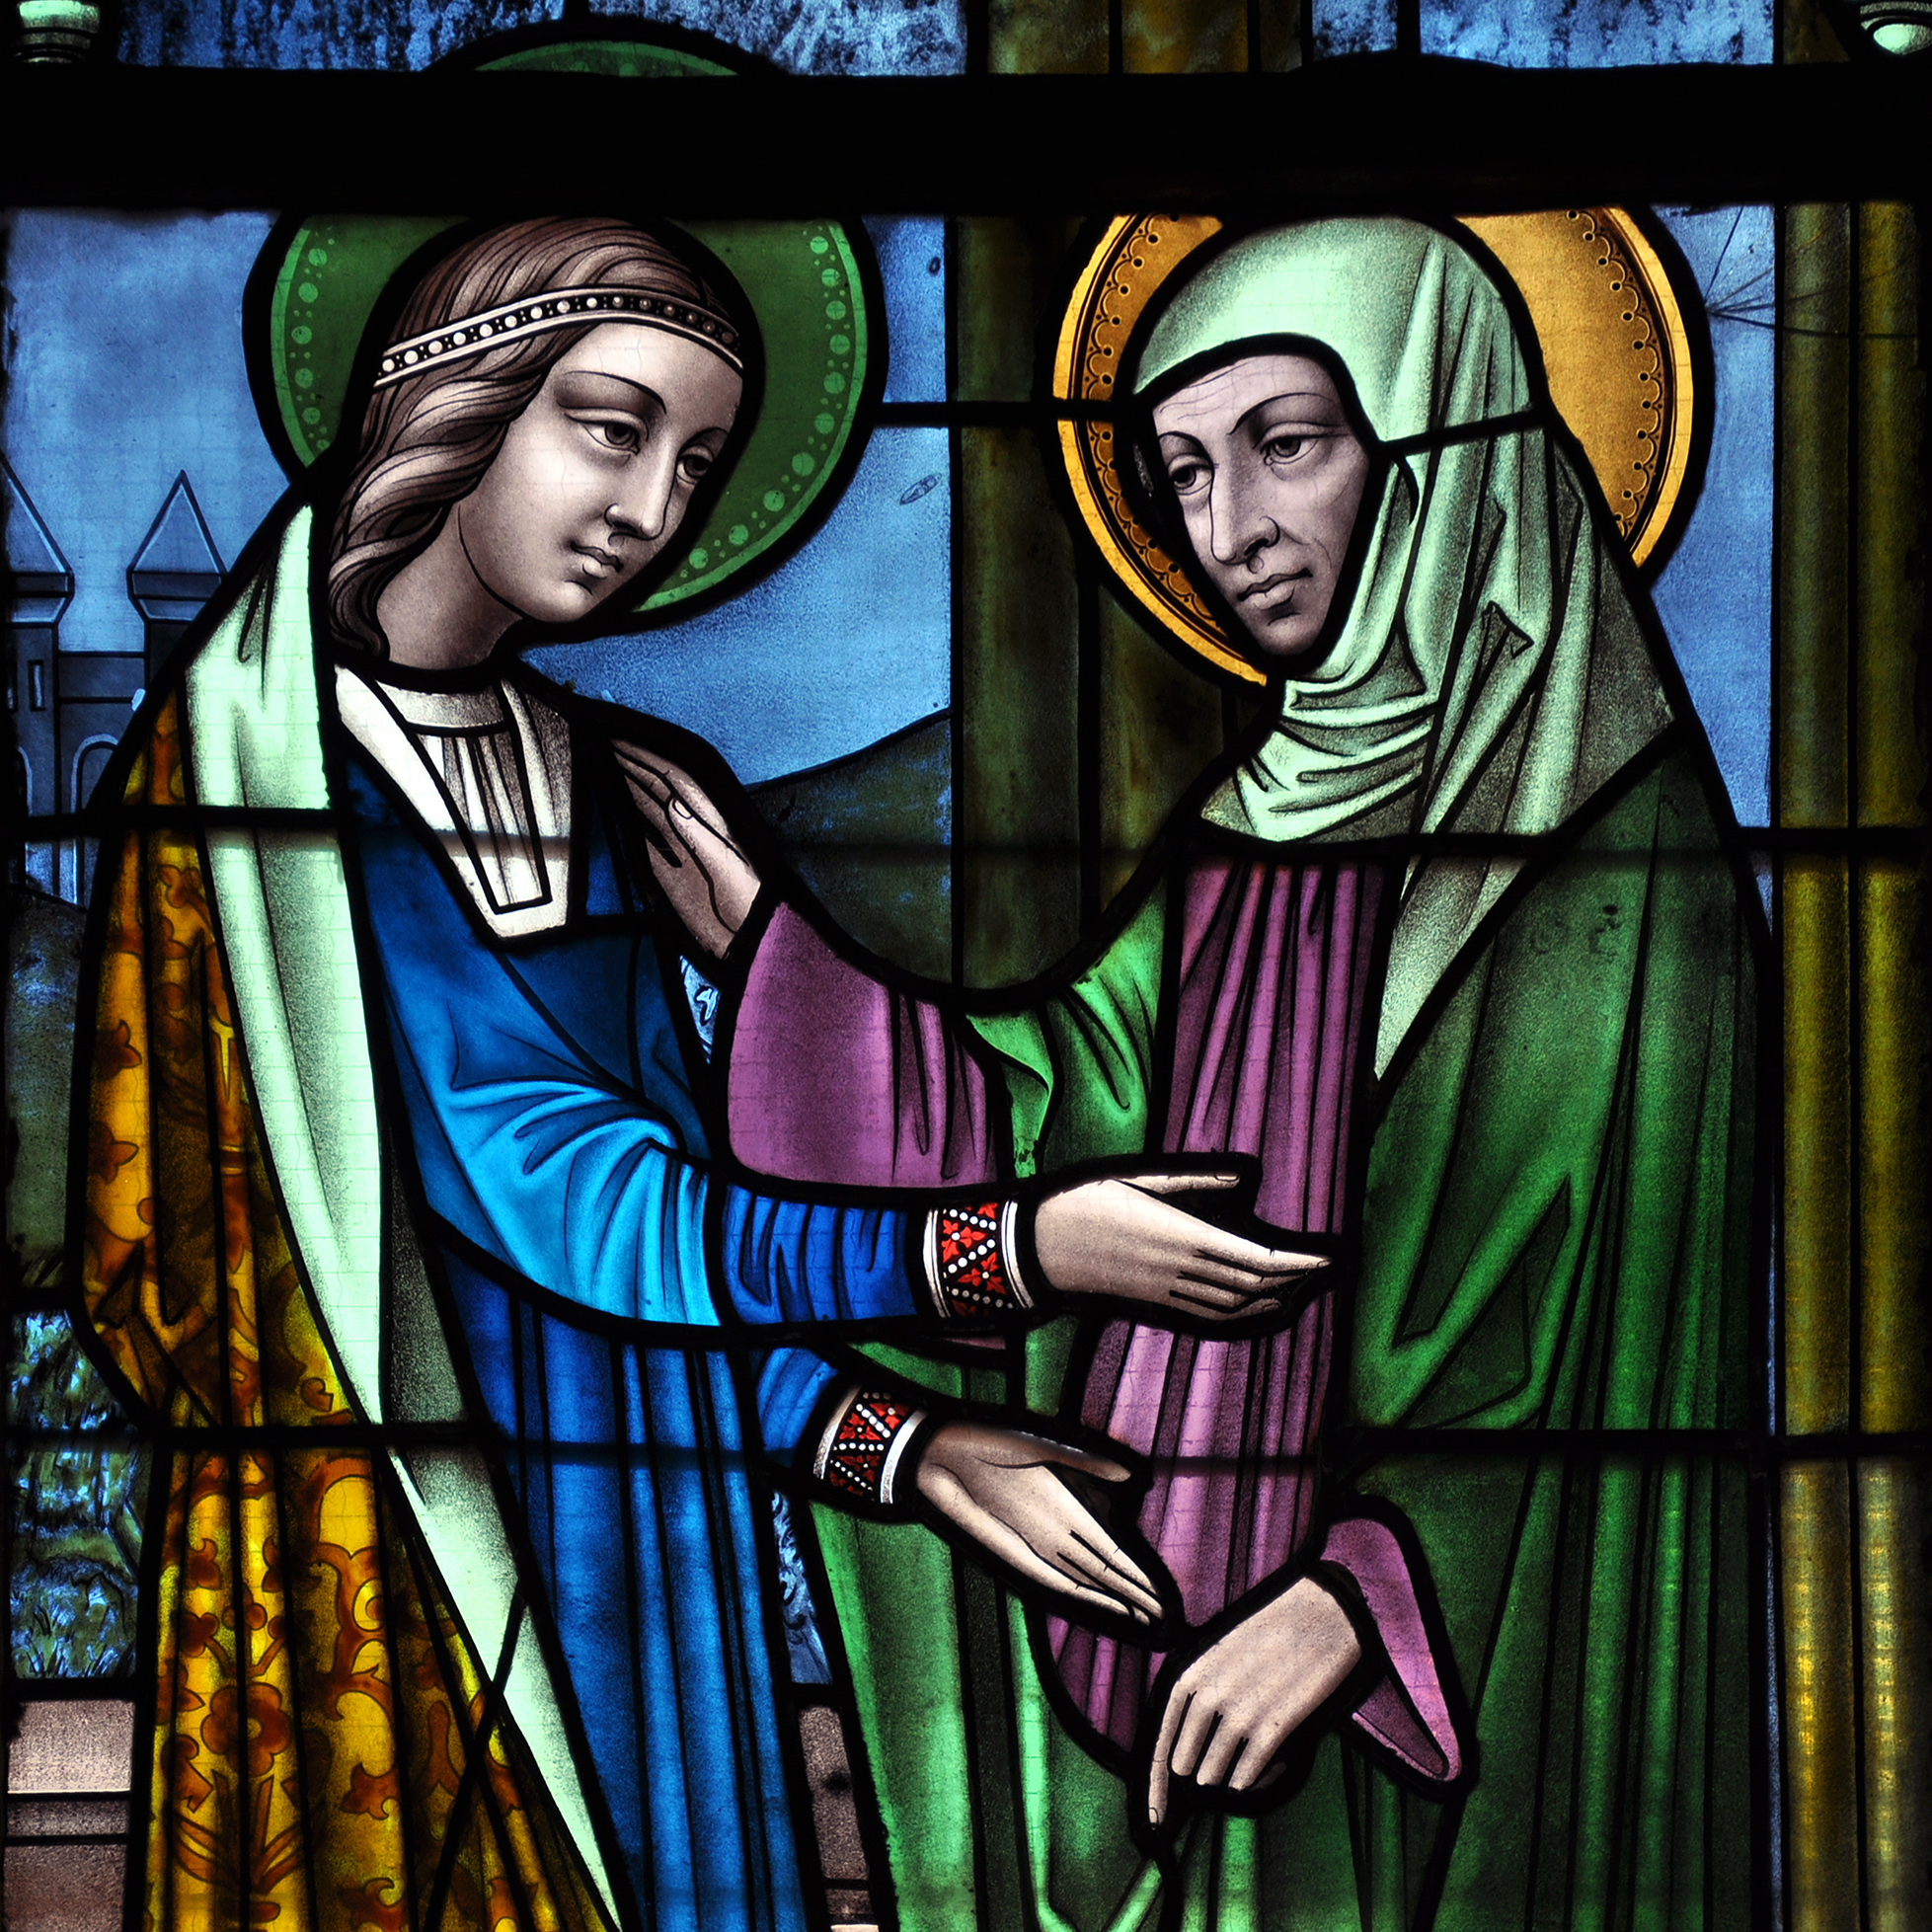 Liège_Eglise_saint-Jacques_Vitrail: stained glass window depicting the Visitation